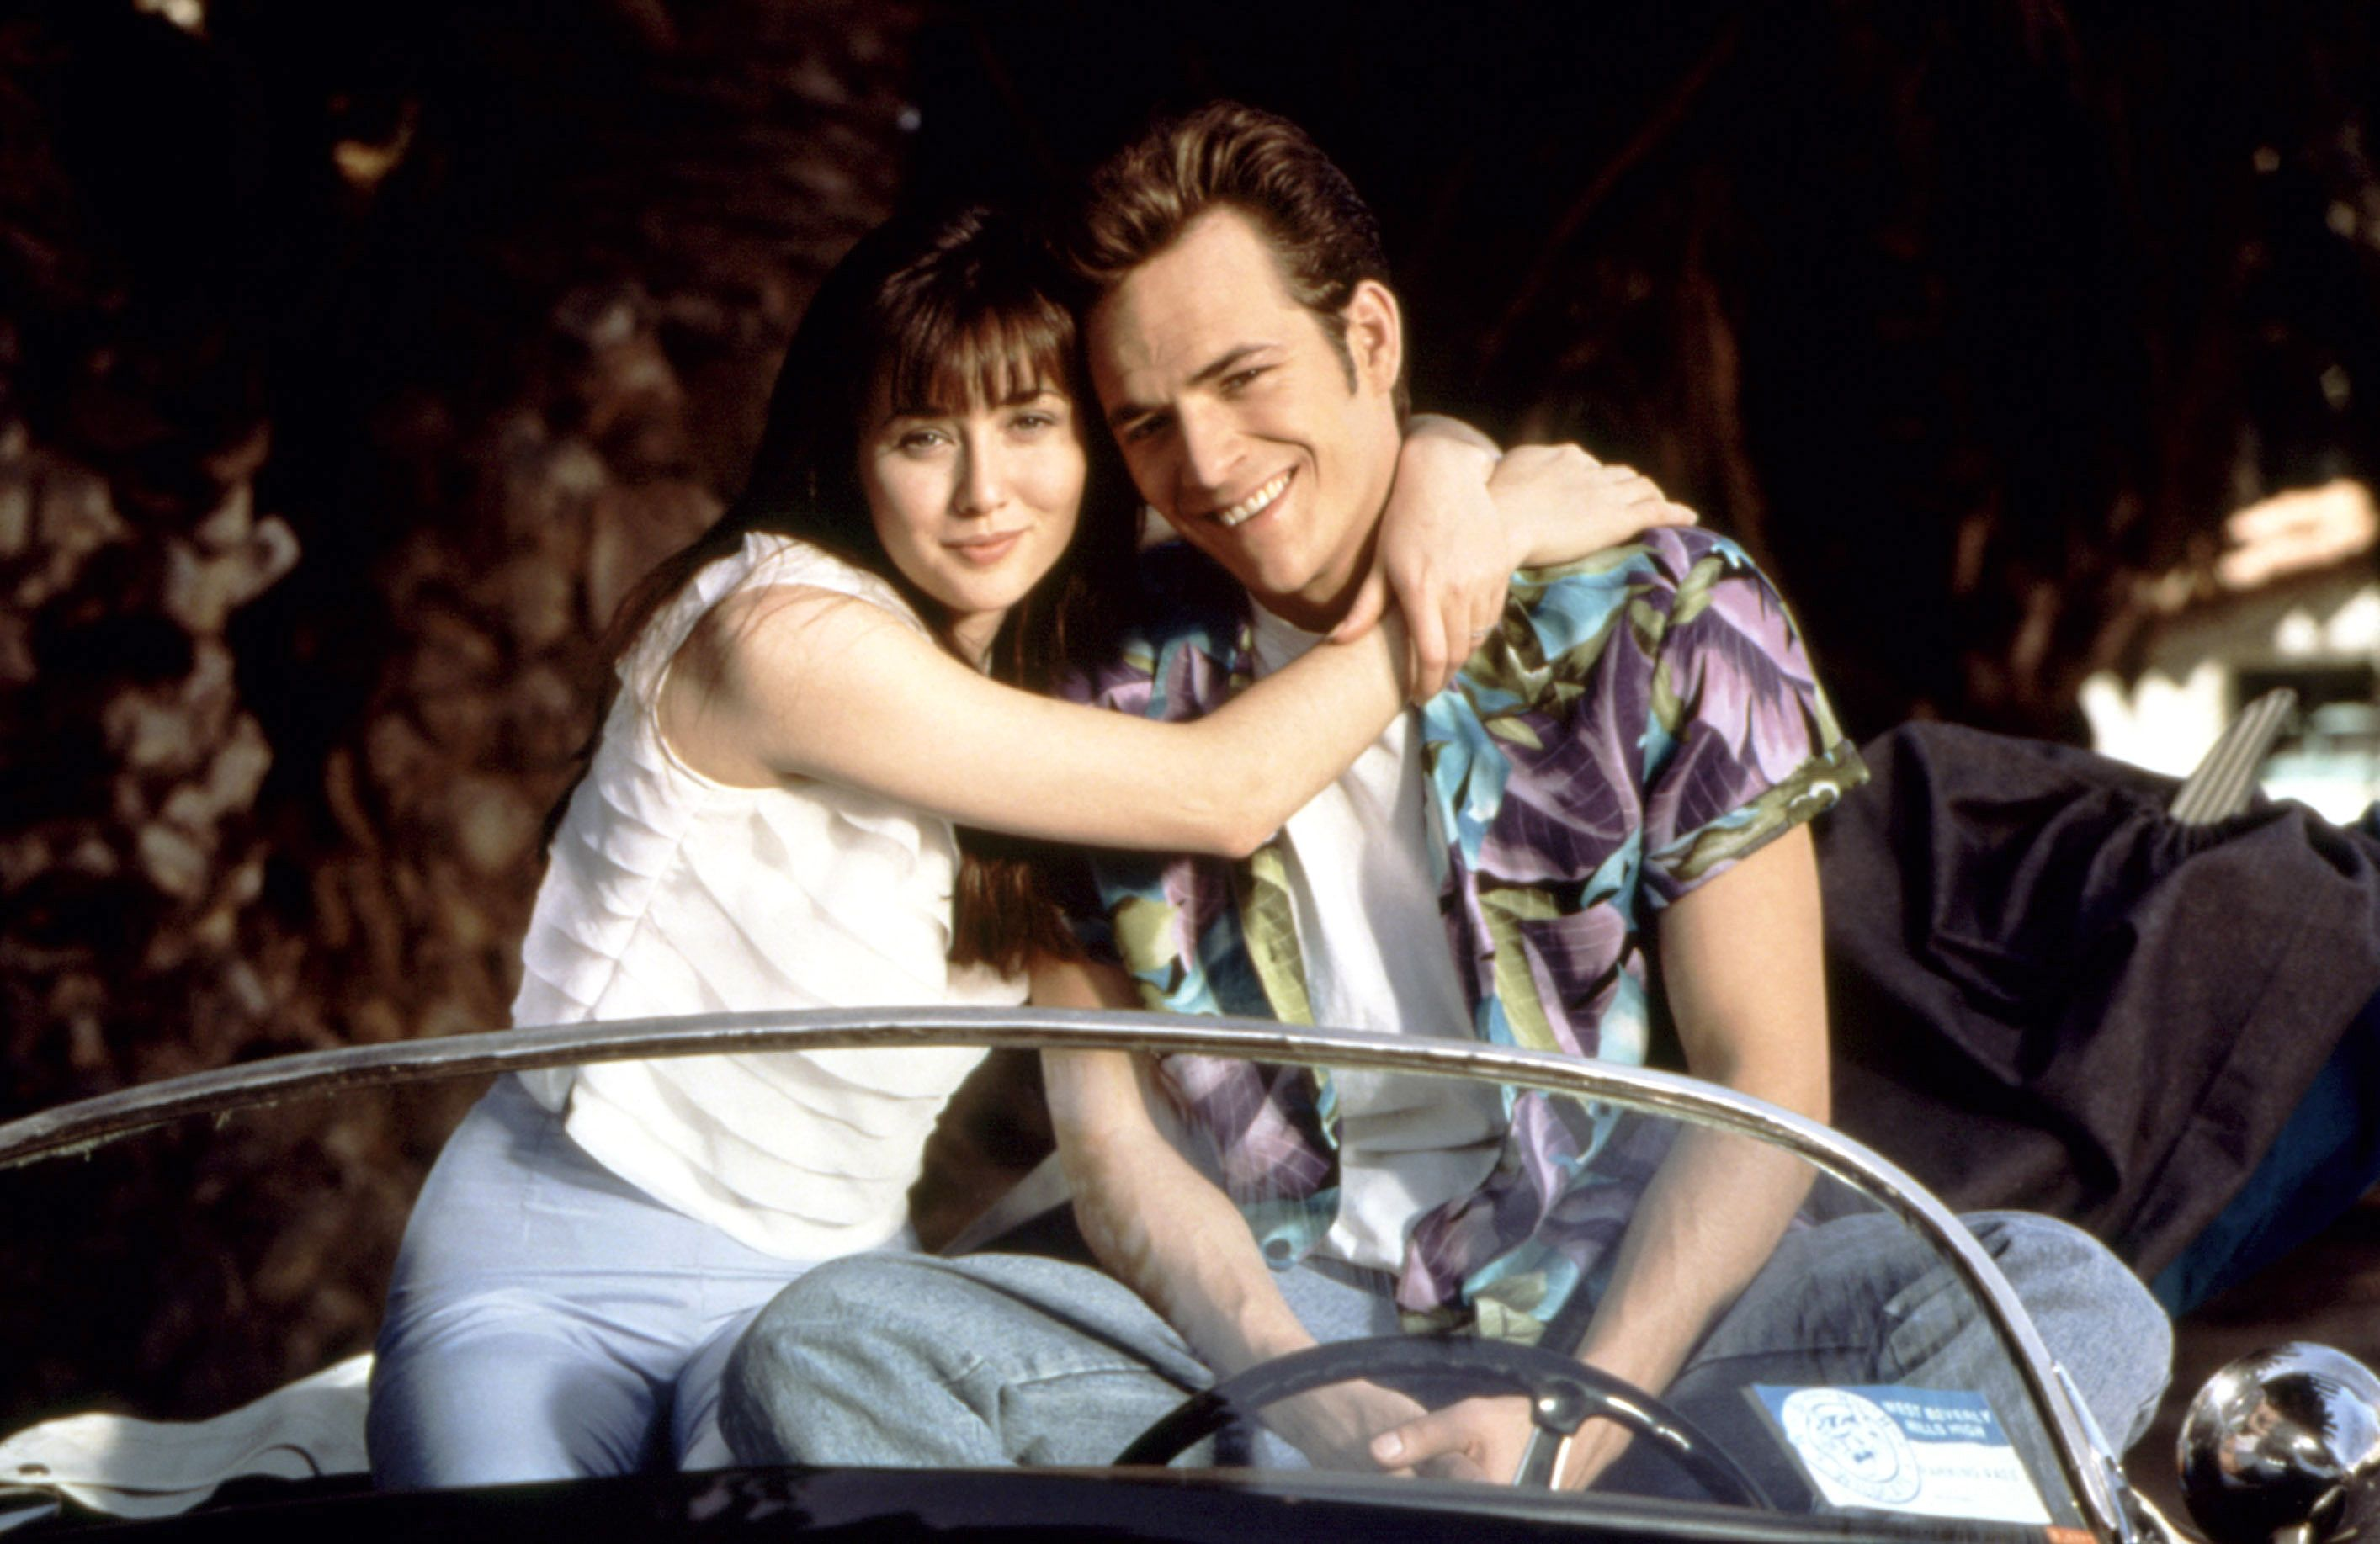 BEVERLY HILLS 90210, (from the left): Shannen Doherty, Luke Perry, 1990-2000.